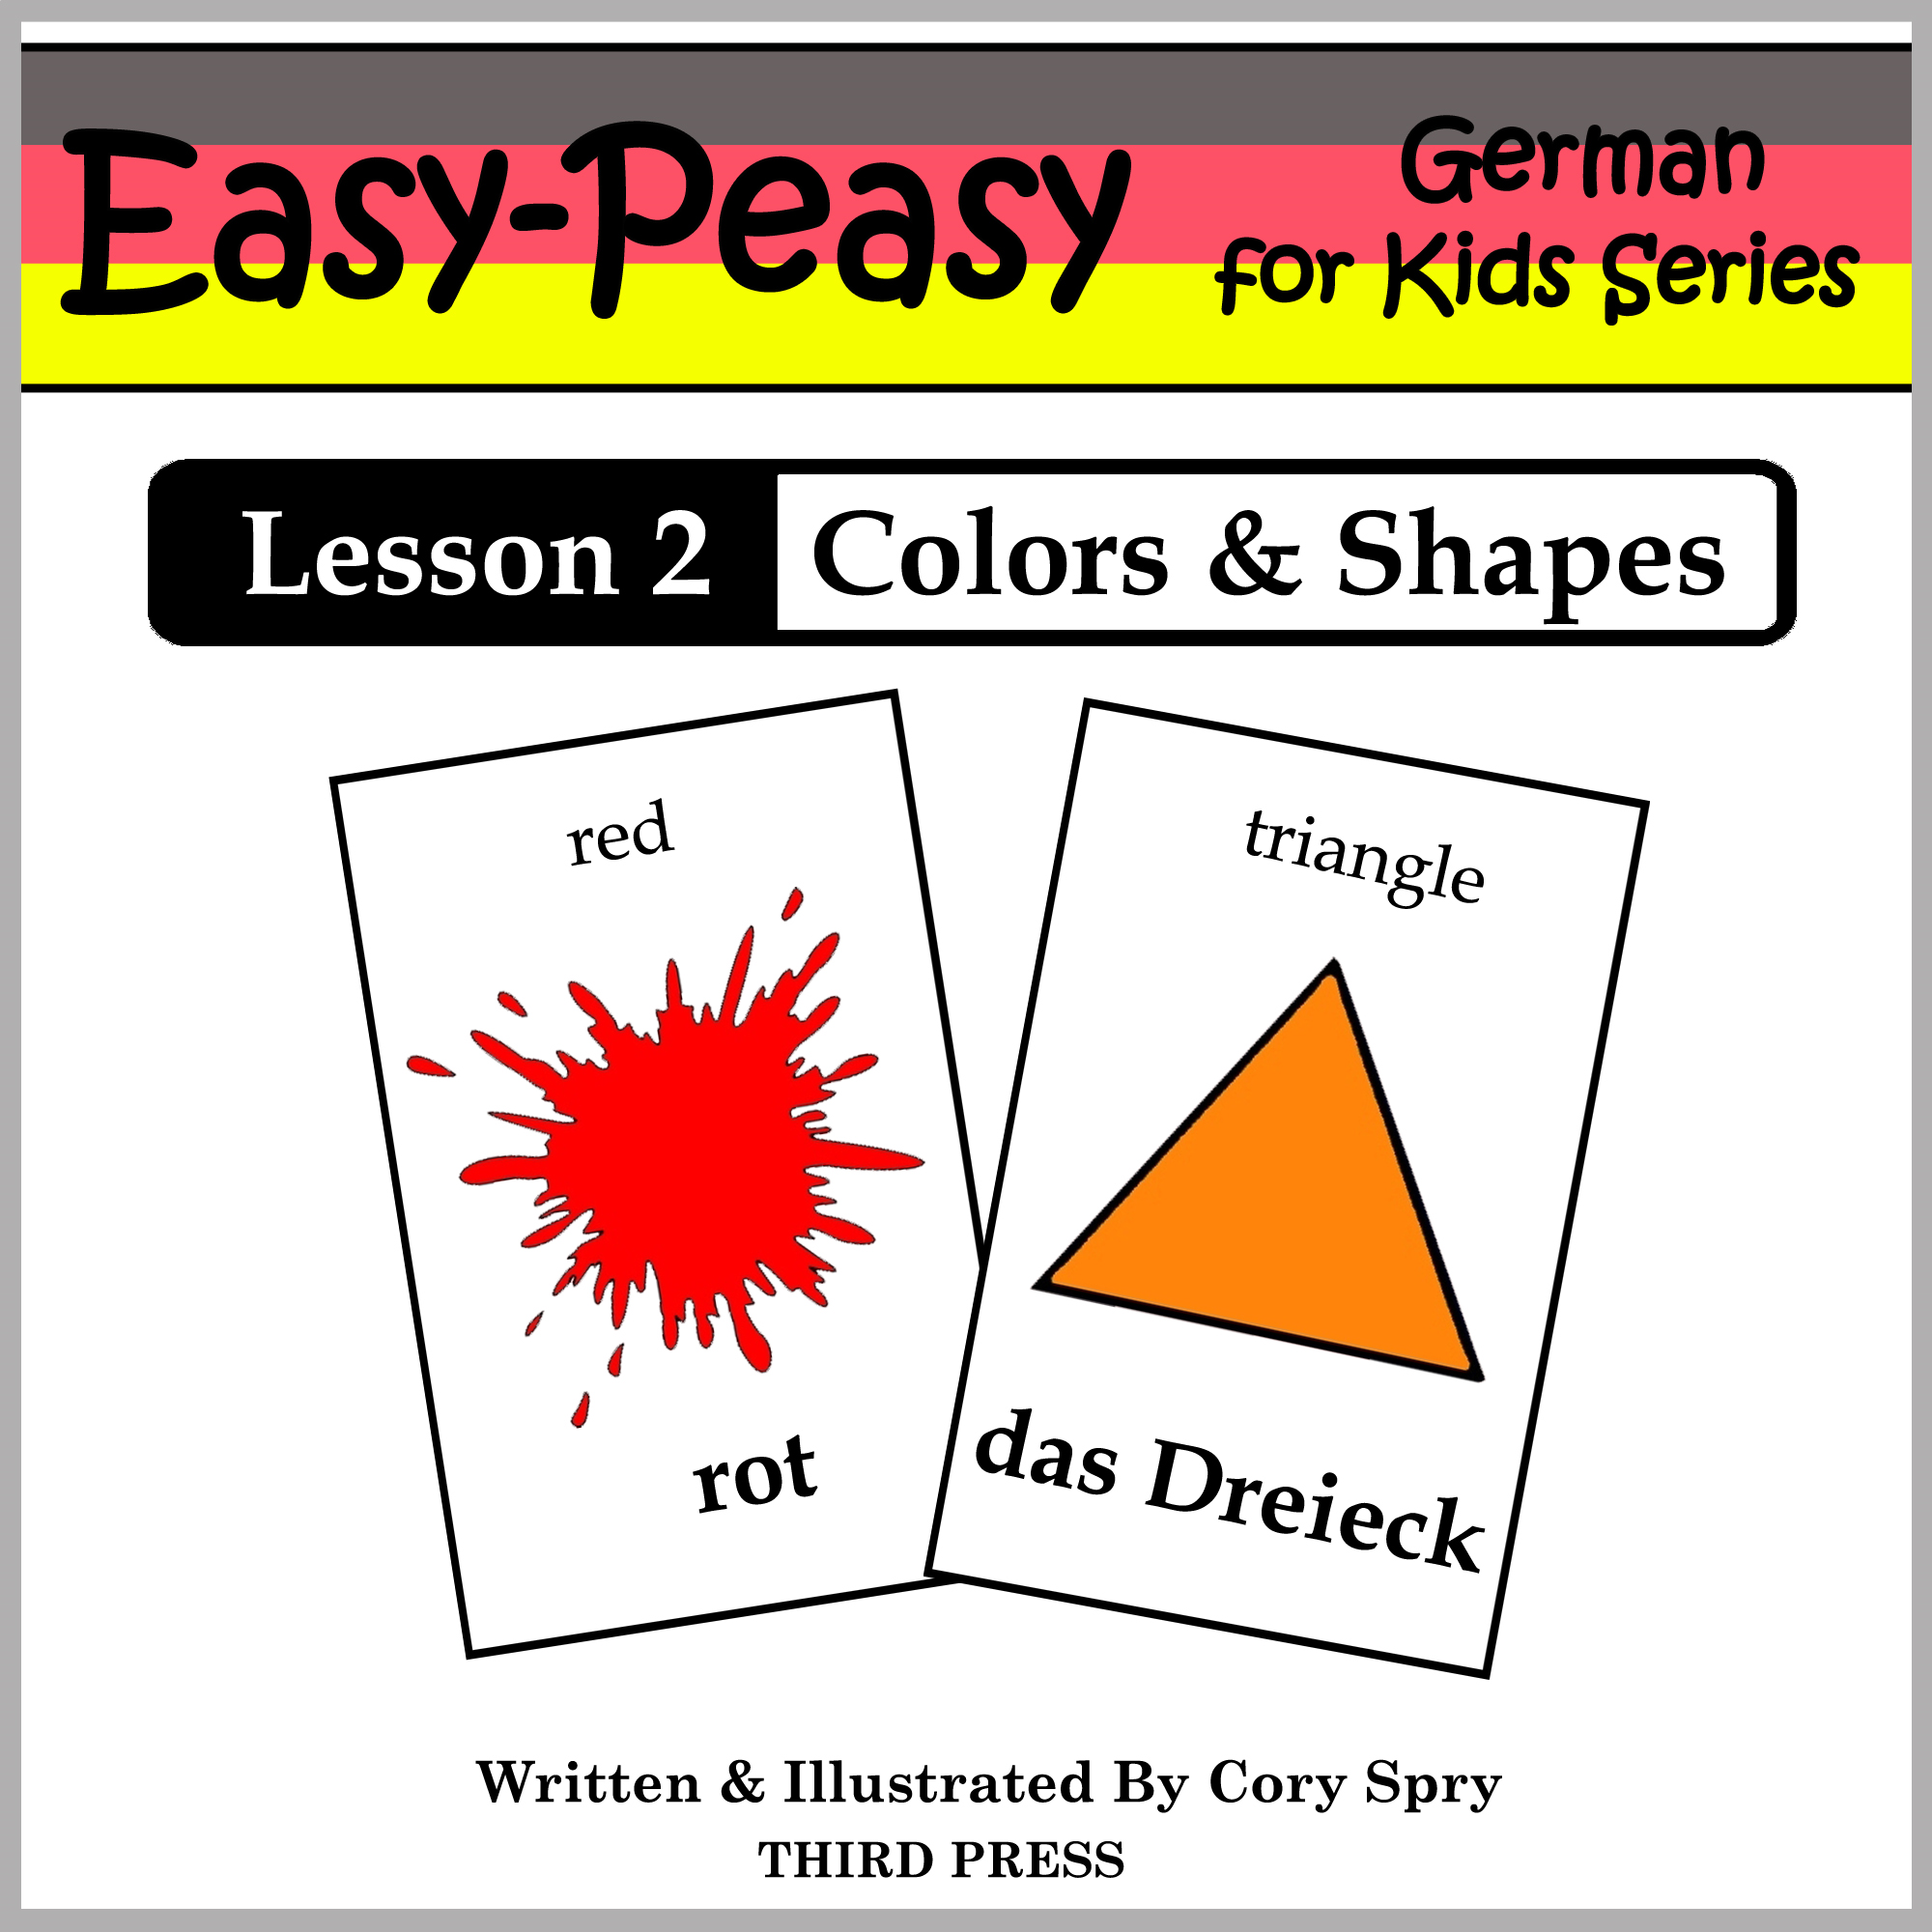 German Lesson 2: Colors & Shapes